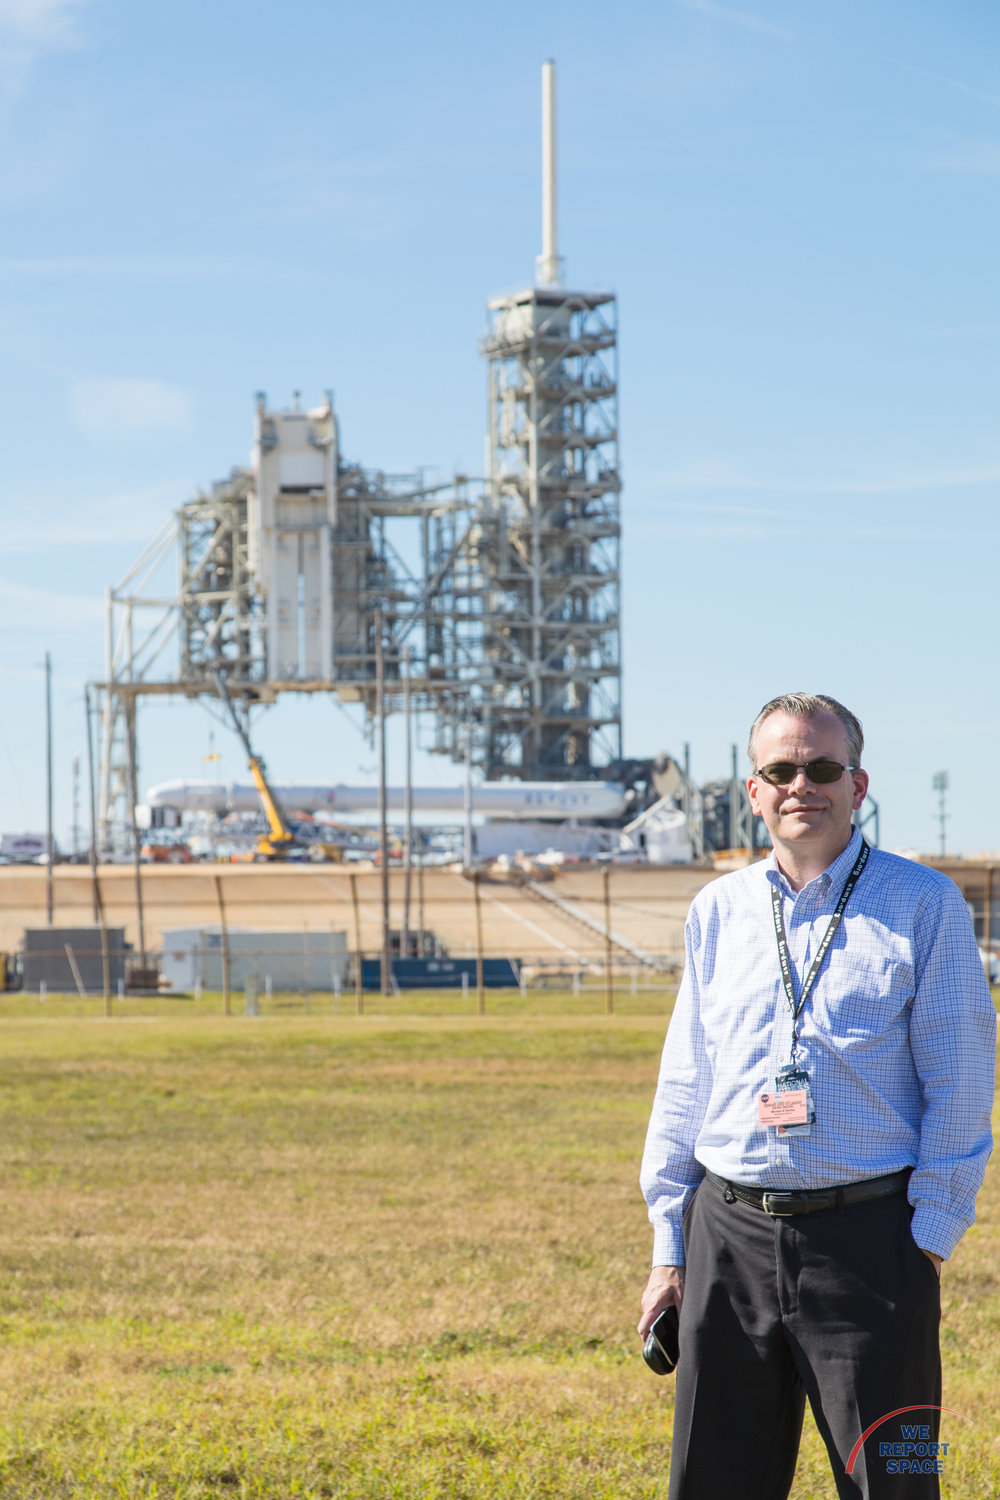 Me at Launch Complex 39A with the CRS10 Falcon9 horizontal behind me. (Photo by Val Phillips)